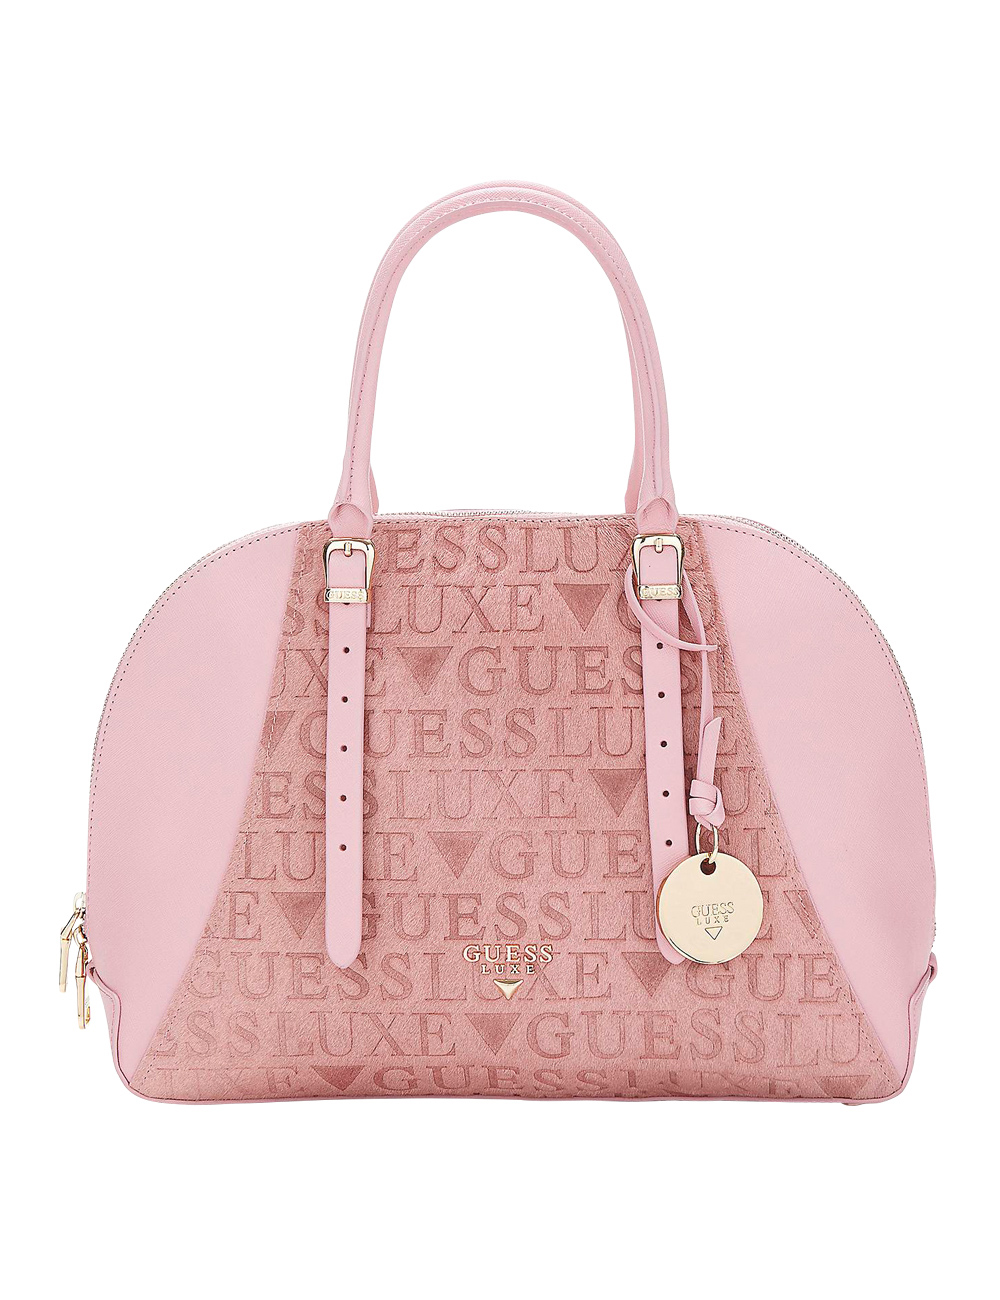 9933fc876f Sac mallette «Lady Luxe» Guess, rose clair